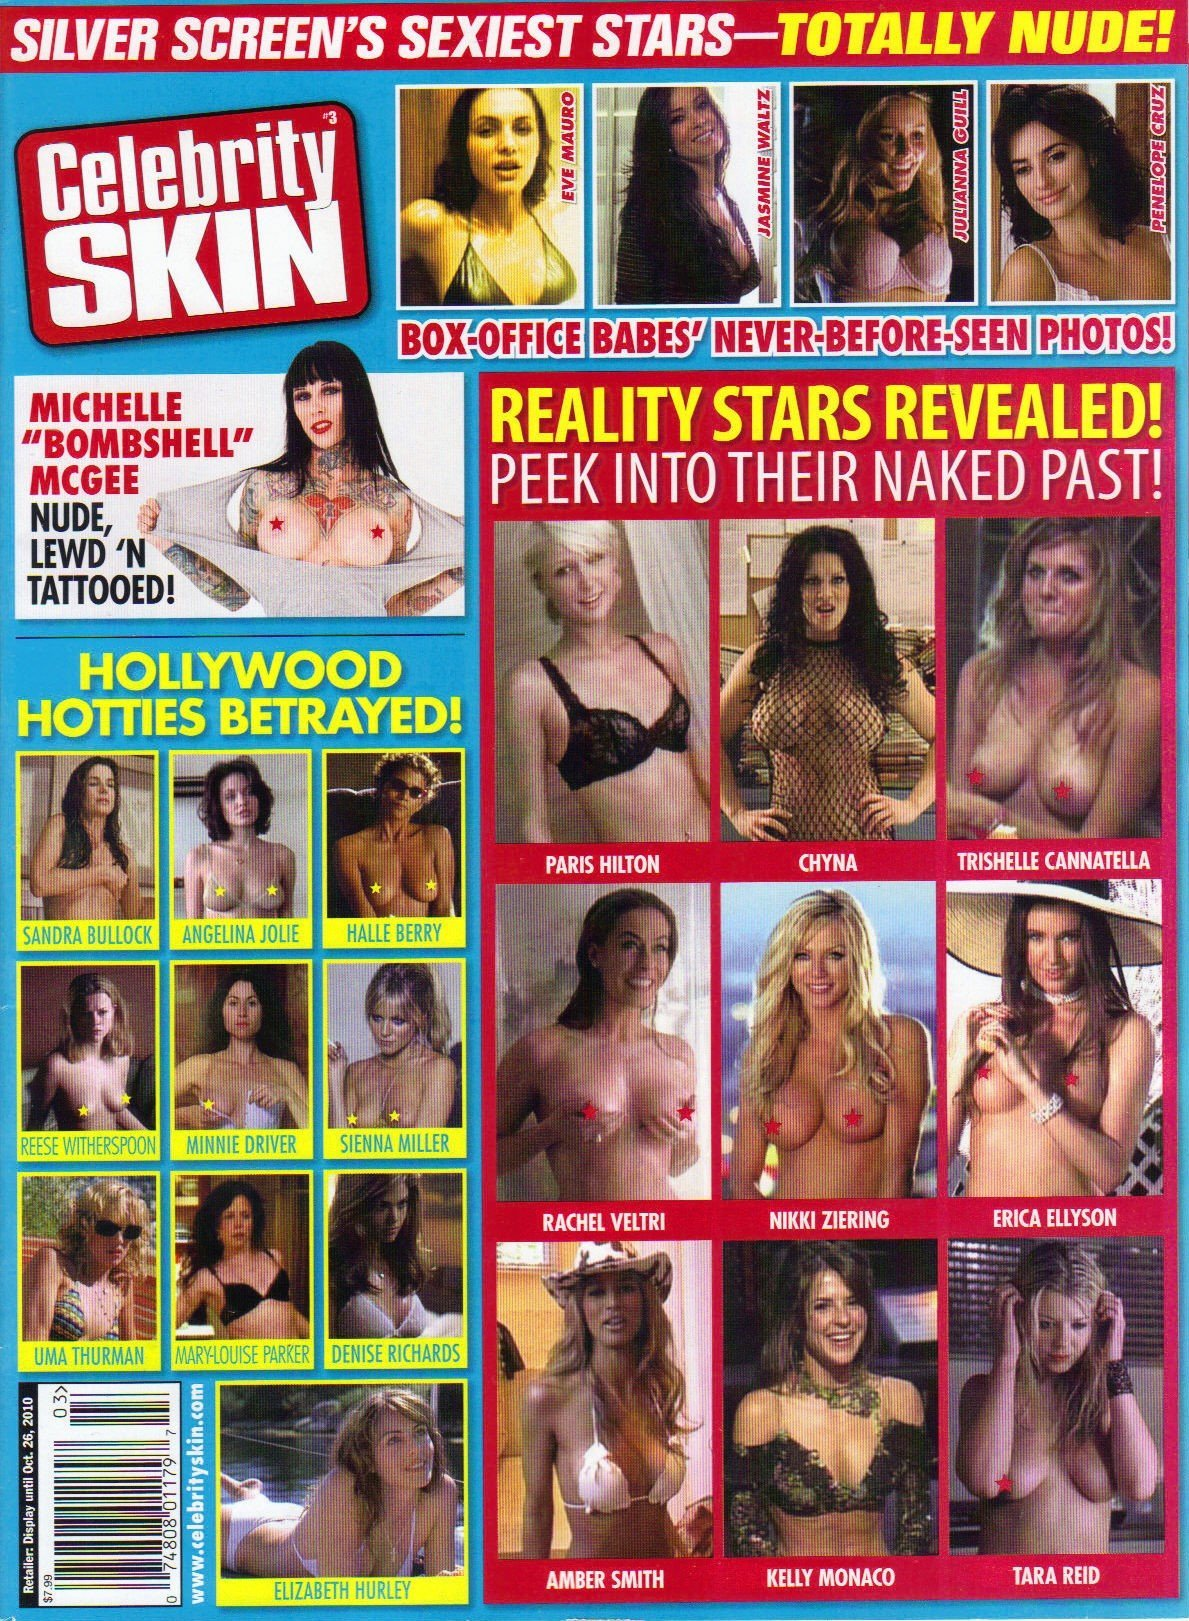 Celebrity Skin Vol 3 (Silver Screen's Sexiest Stars - Totally Nude, 32)  Single Issue Magazine – 2010